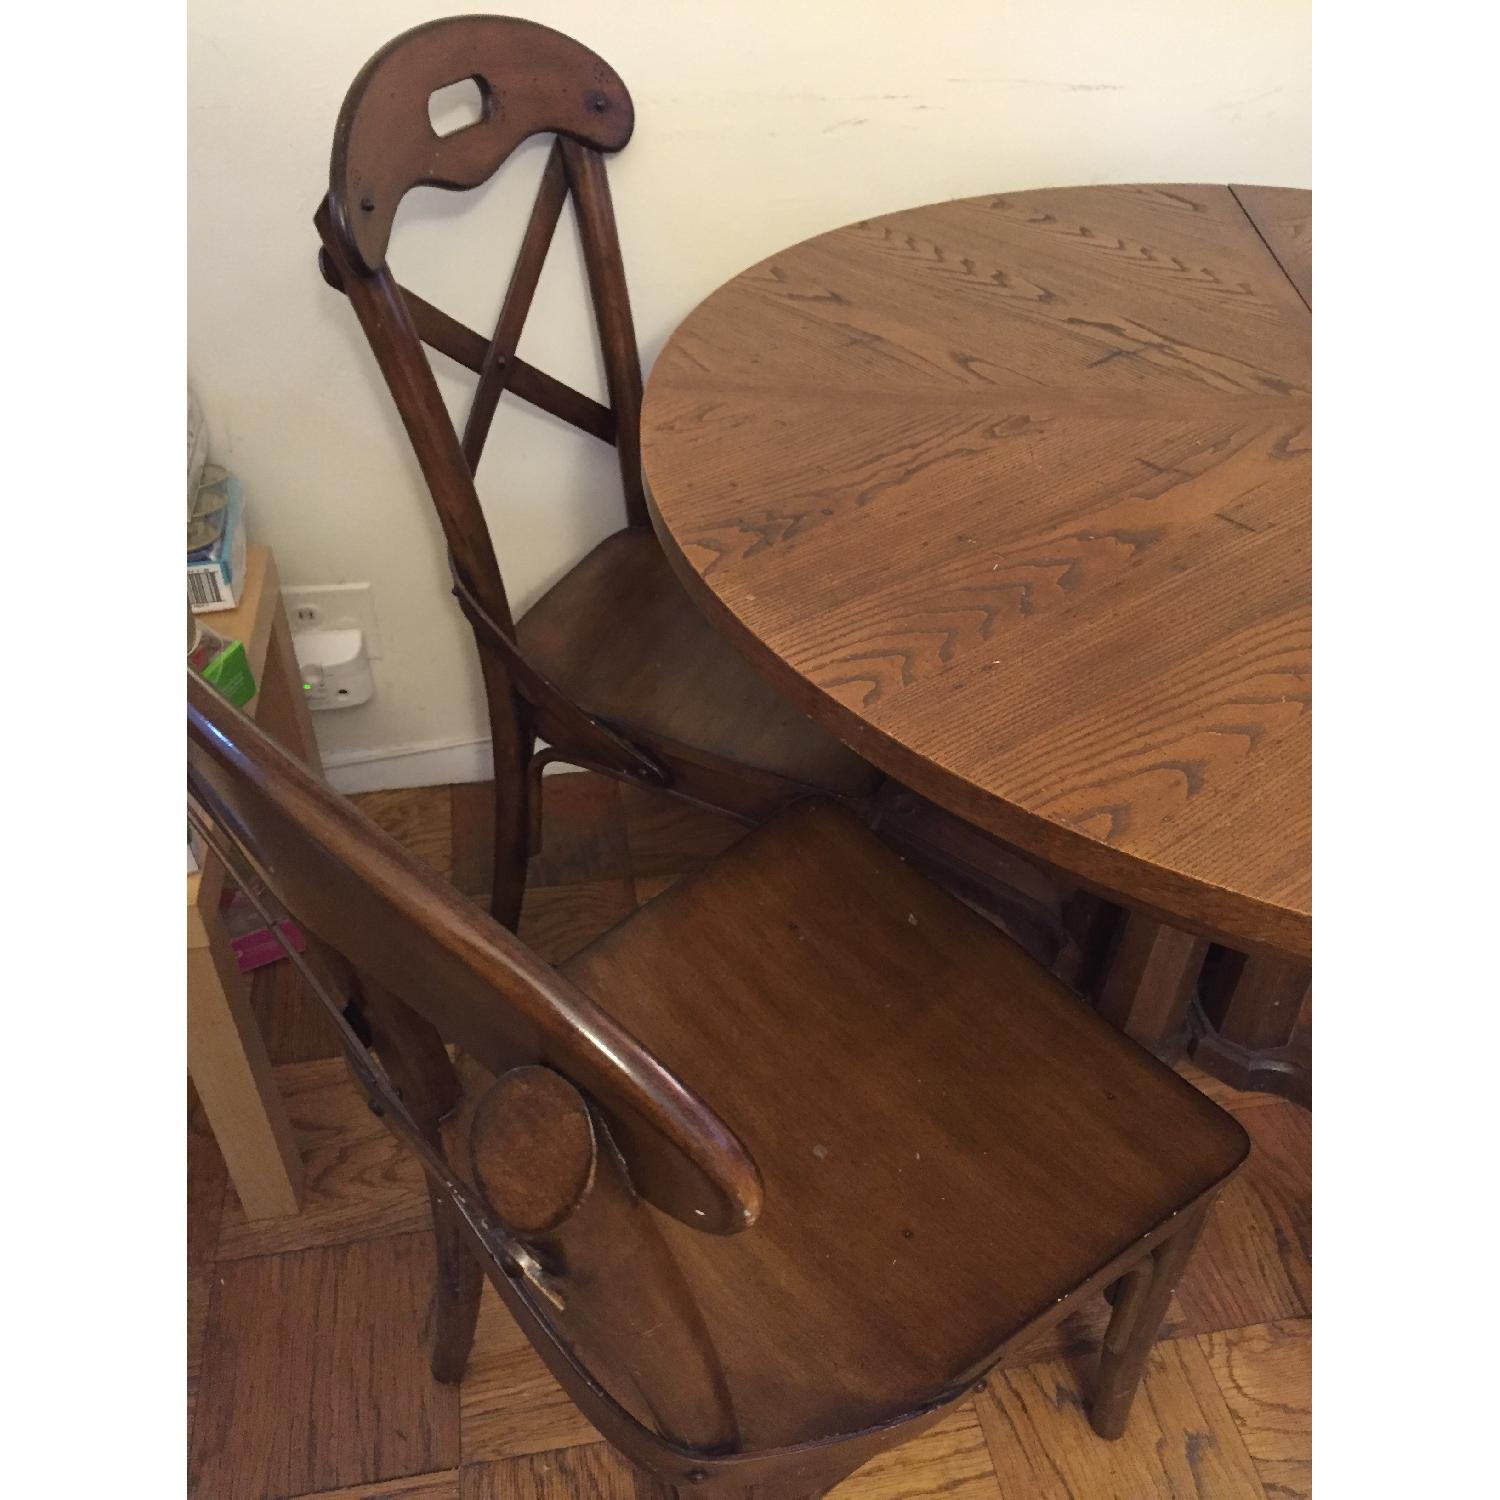 Pier 1 imports Wood Marchella Dining Room Chairs - image-3